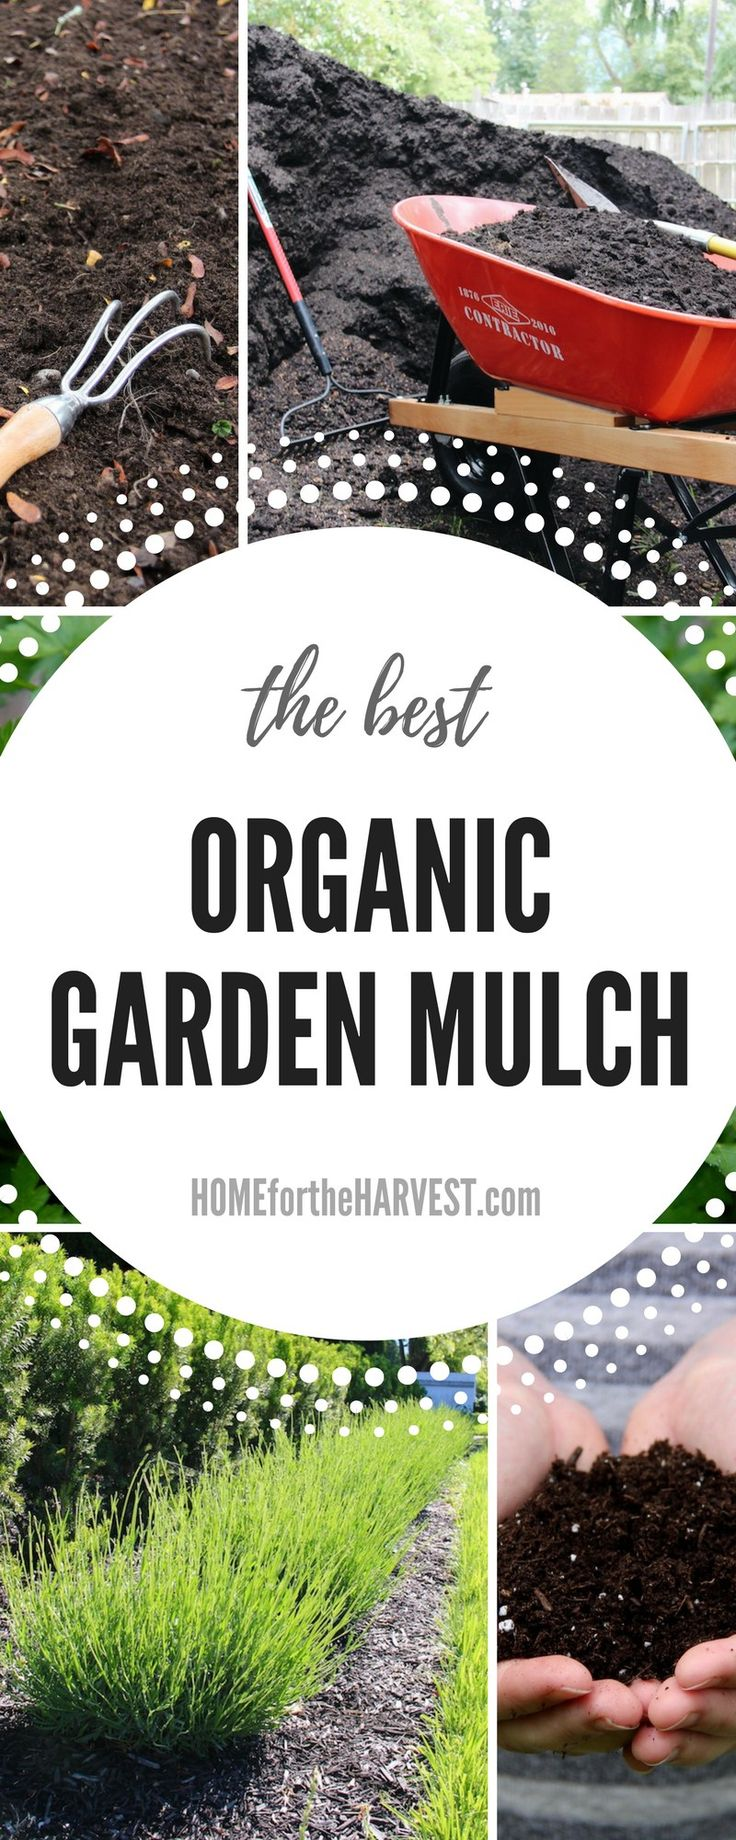 7855 best gardening images on pinterest gardening plants and